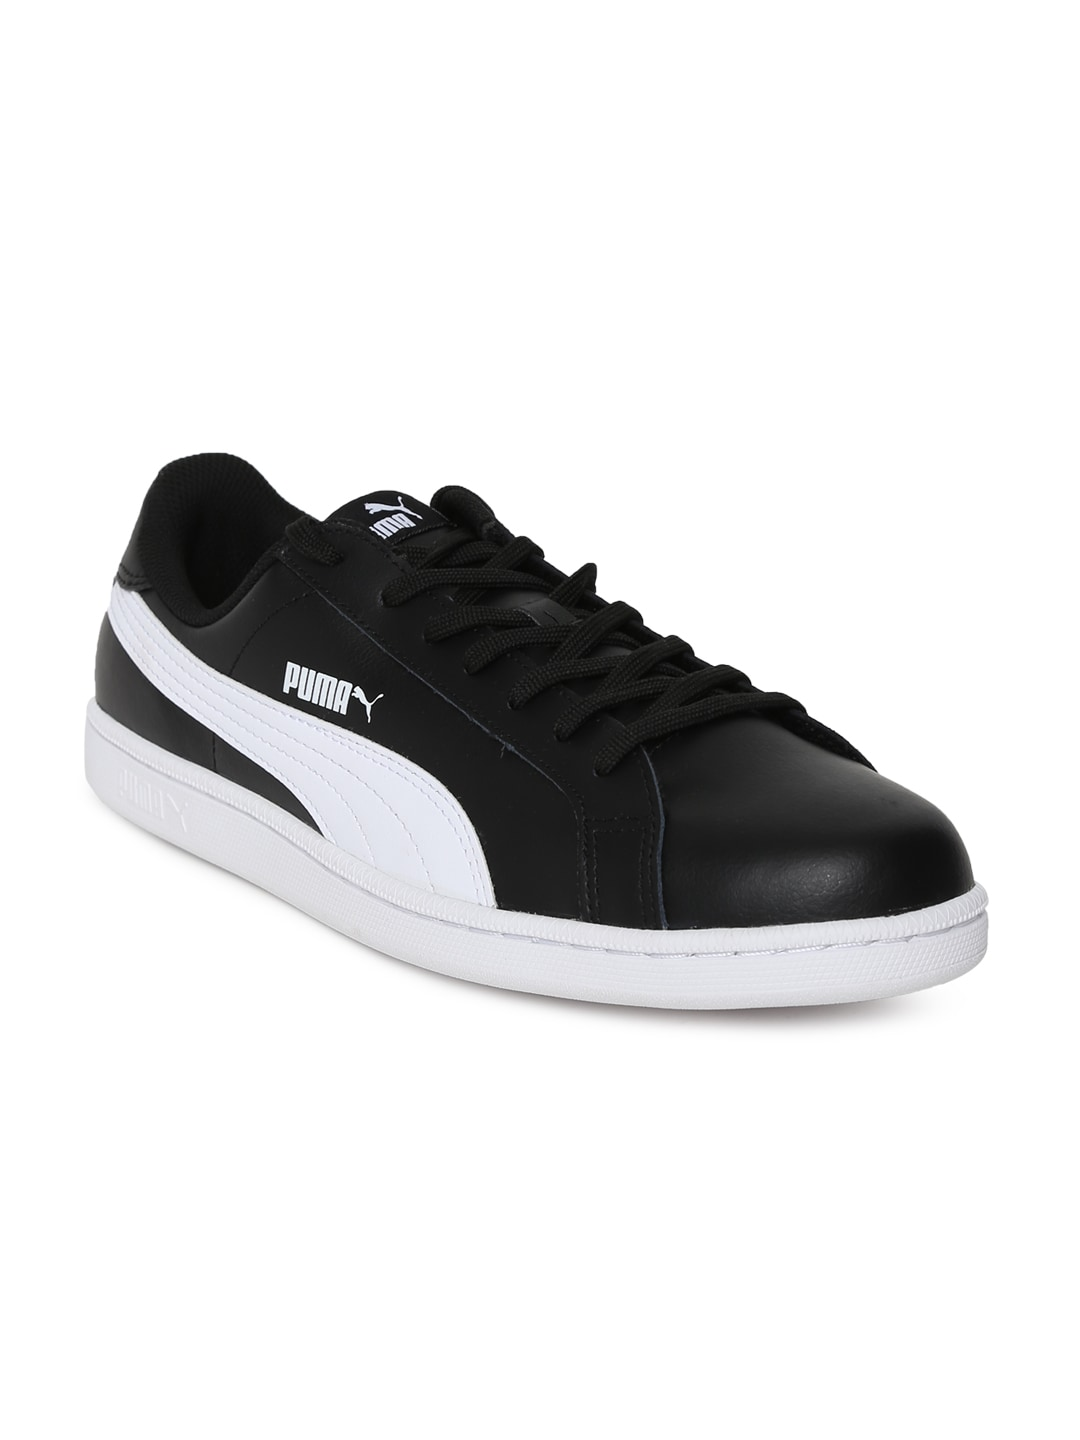 39f64811bad114 Puma Leather Shoes - Buy Puma Leather Shoes Online in India